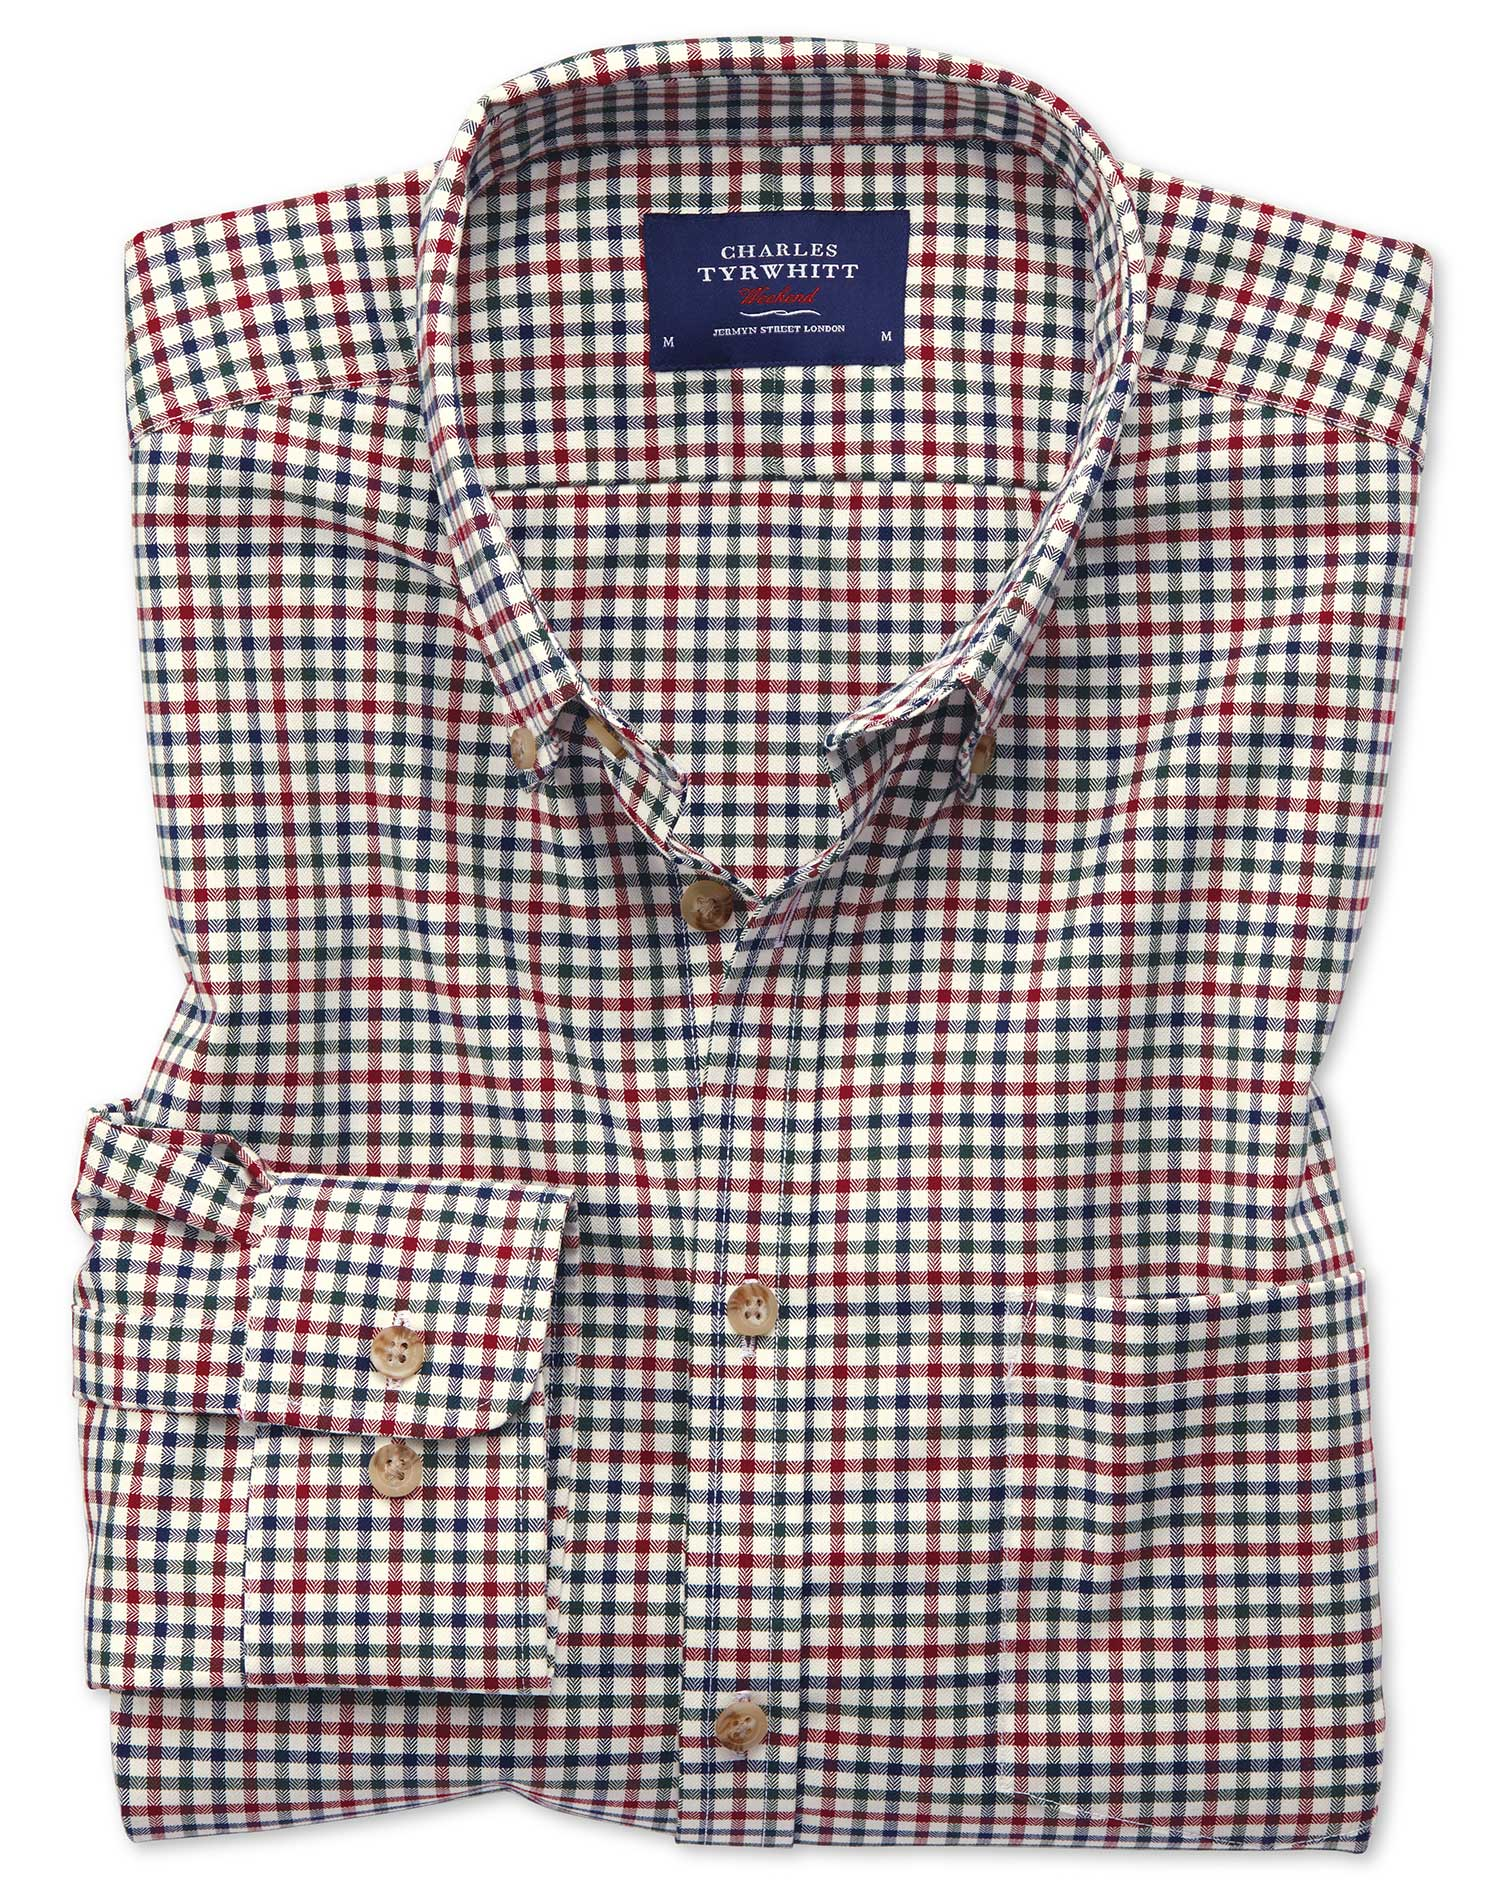 Slim Fit Button-Down Non-Iron Twill Multi Gingham Cotton Shirt Single Cuff Size Large by Charles Tyr